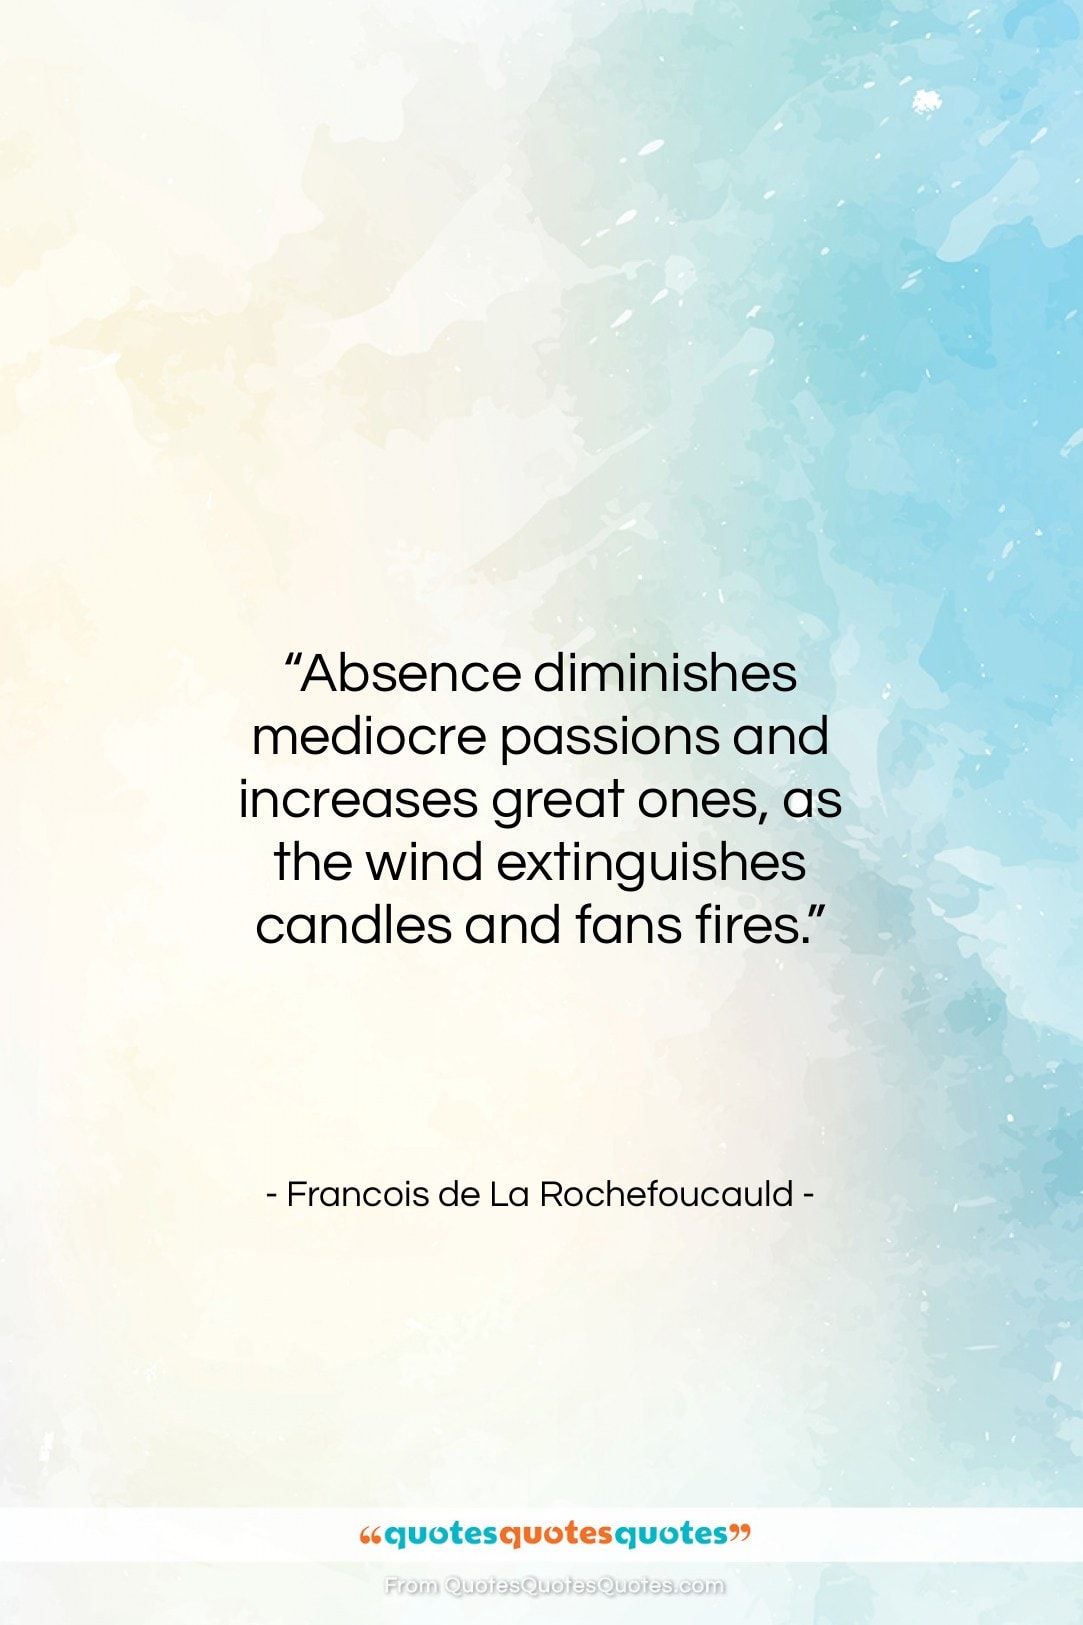 """Francois de La Rochefoucauld quote: """"Absence diminishes mediocre passions and increases great…""""- at QuotesQuotesQuotes.com"""